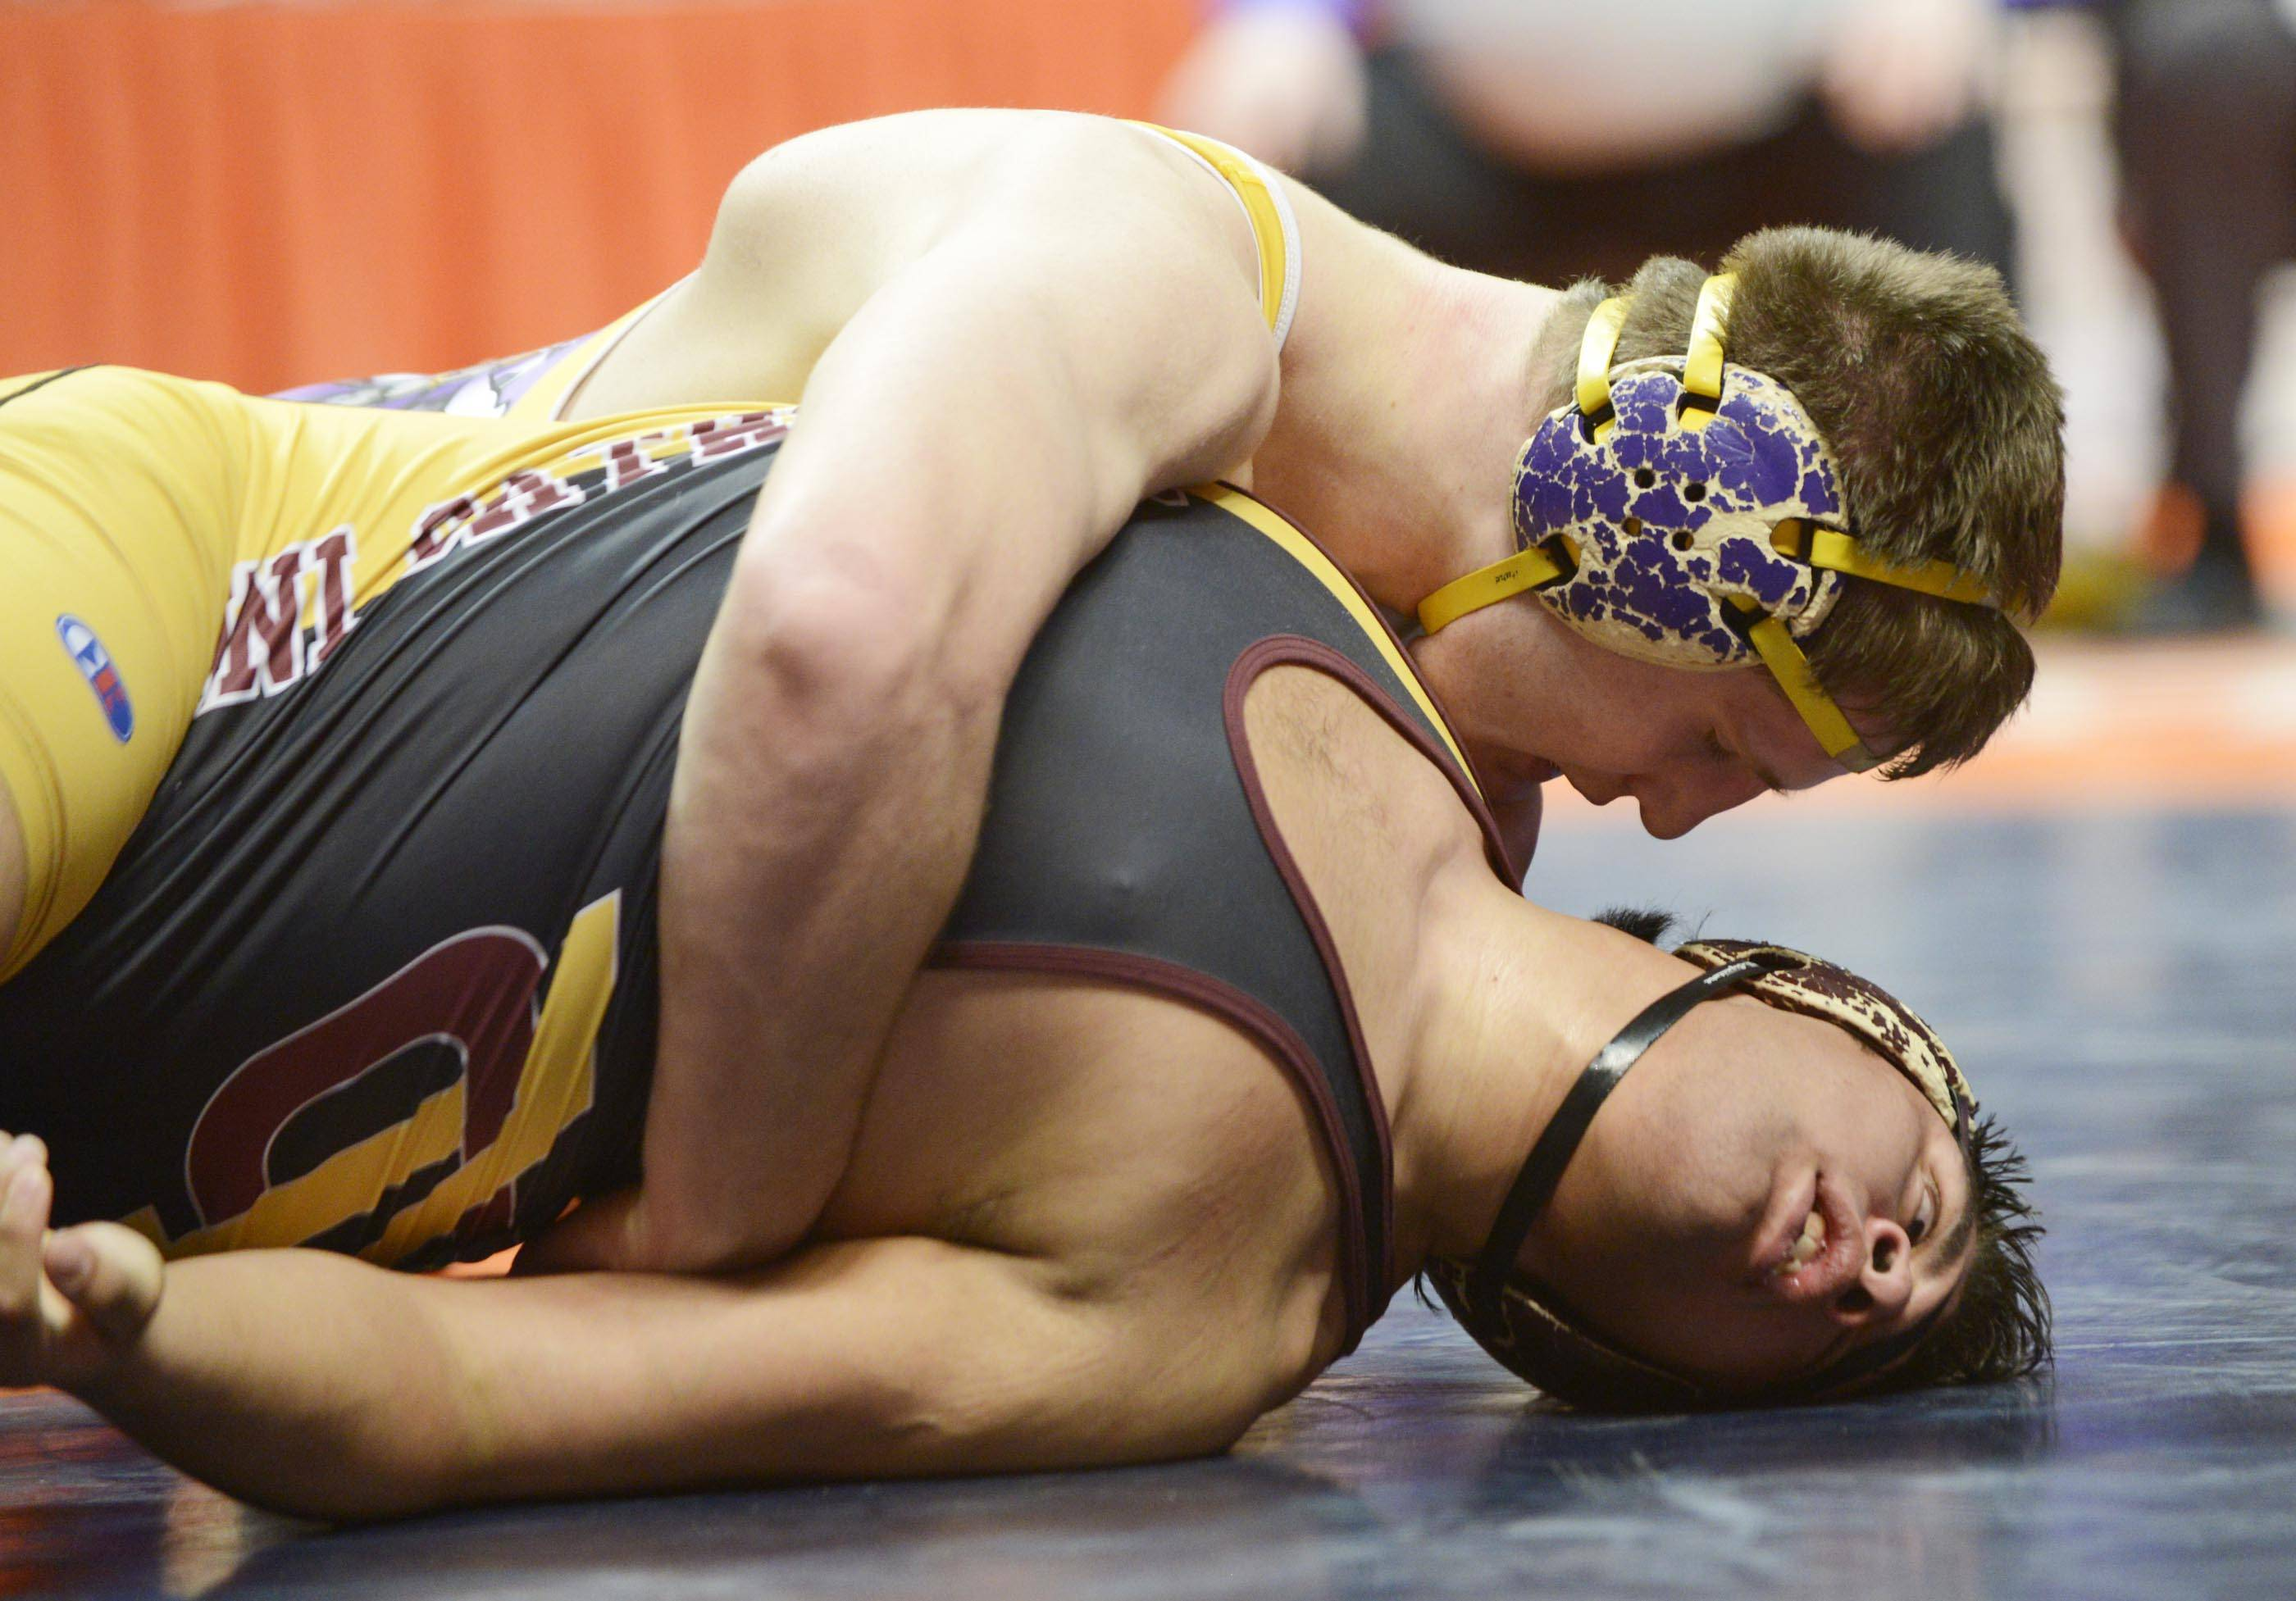 Nate Magiera of Wauconda High School holds down Edgar Ruano of Lombard Montini Catholic High School Saturday in the 220-pound weight class championship match of the wrestling IHSA Class 2A state tournament at State Farm Center in Champaign. Magiera won the title.